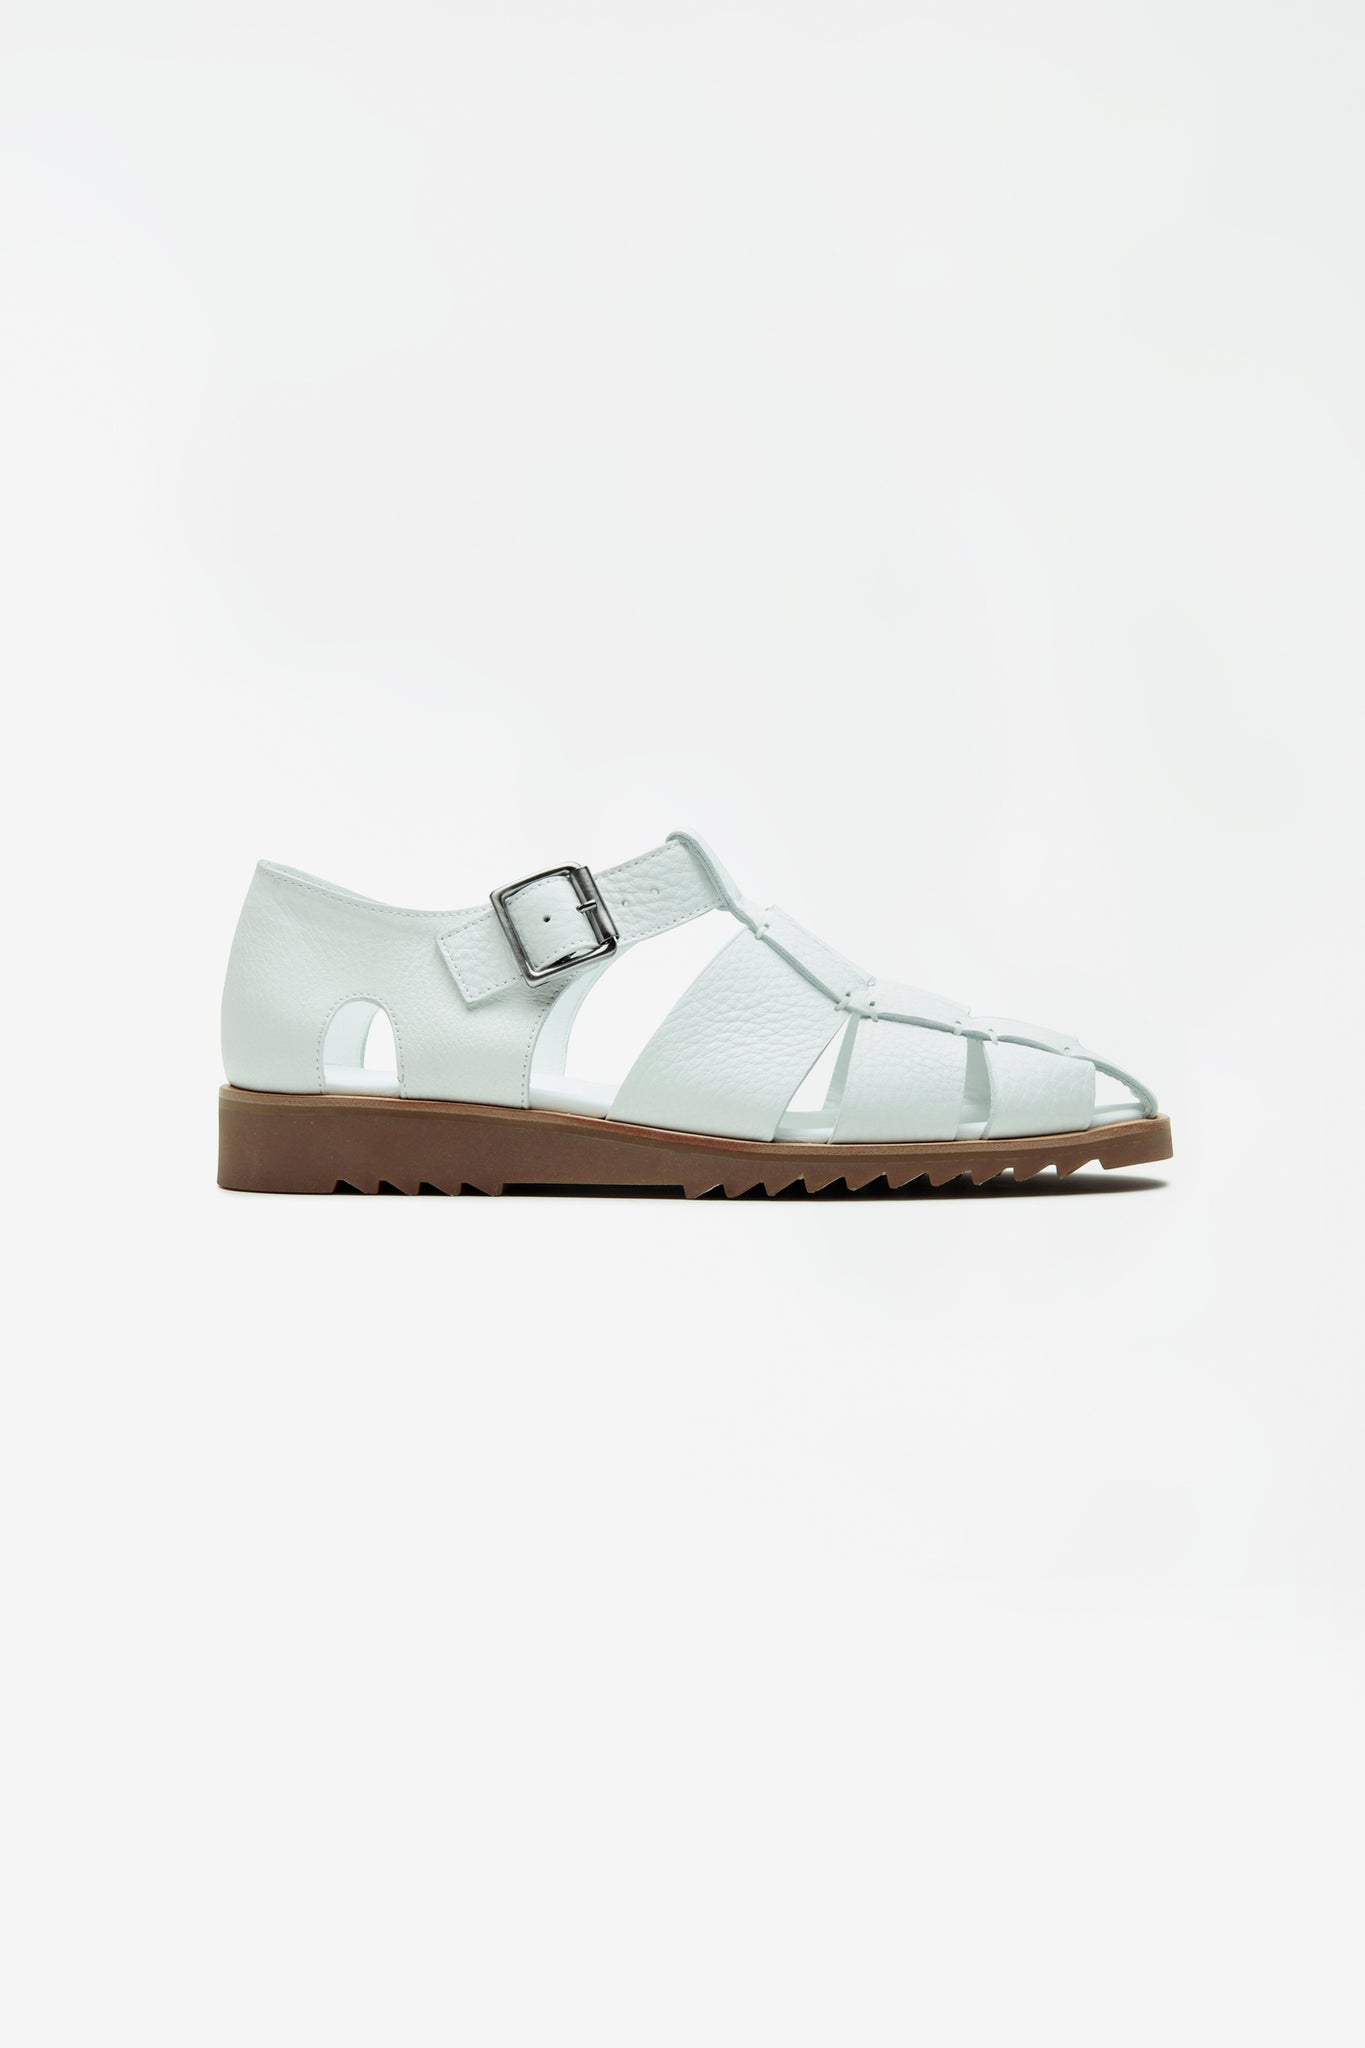 Pacific sandals white